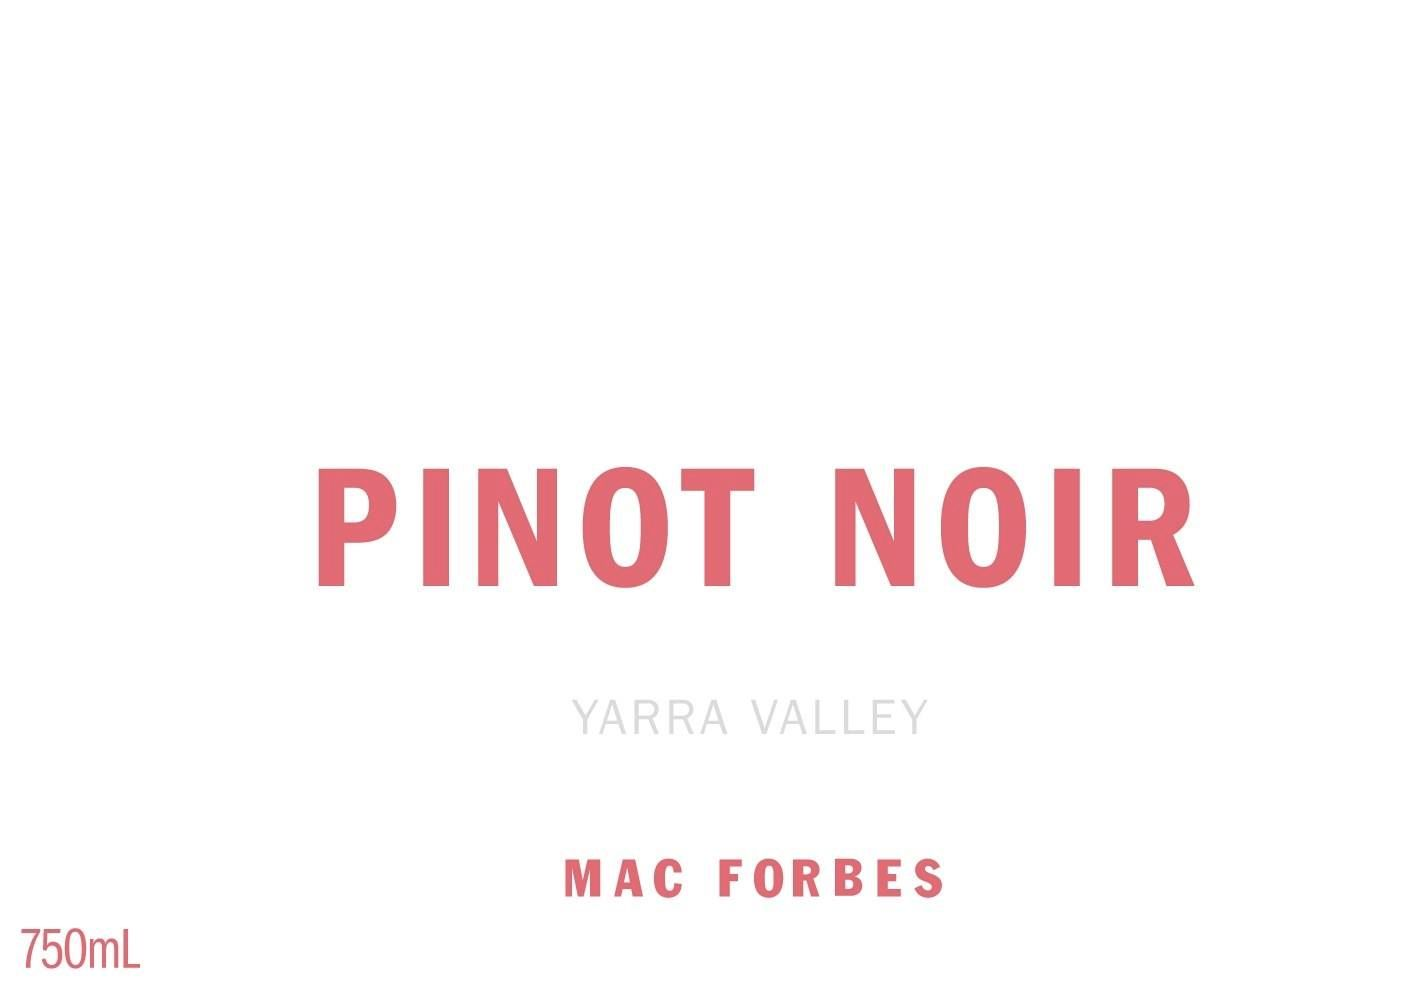 Mac Forbes Yarra Valley Pinot Noir 2018  Front Label